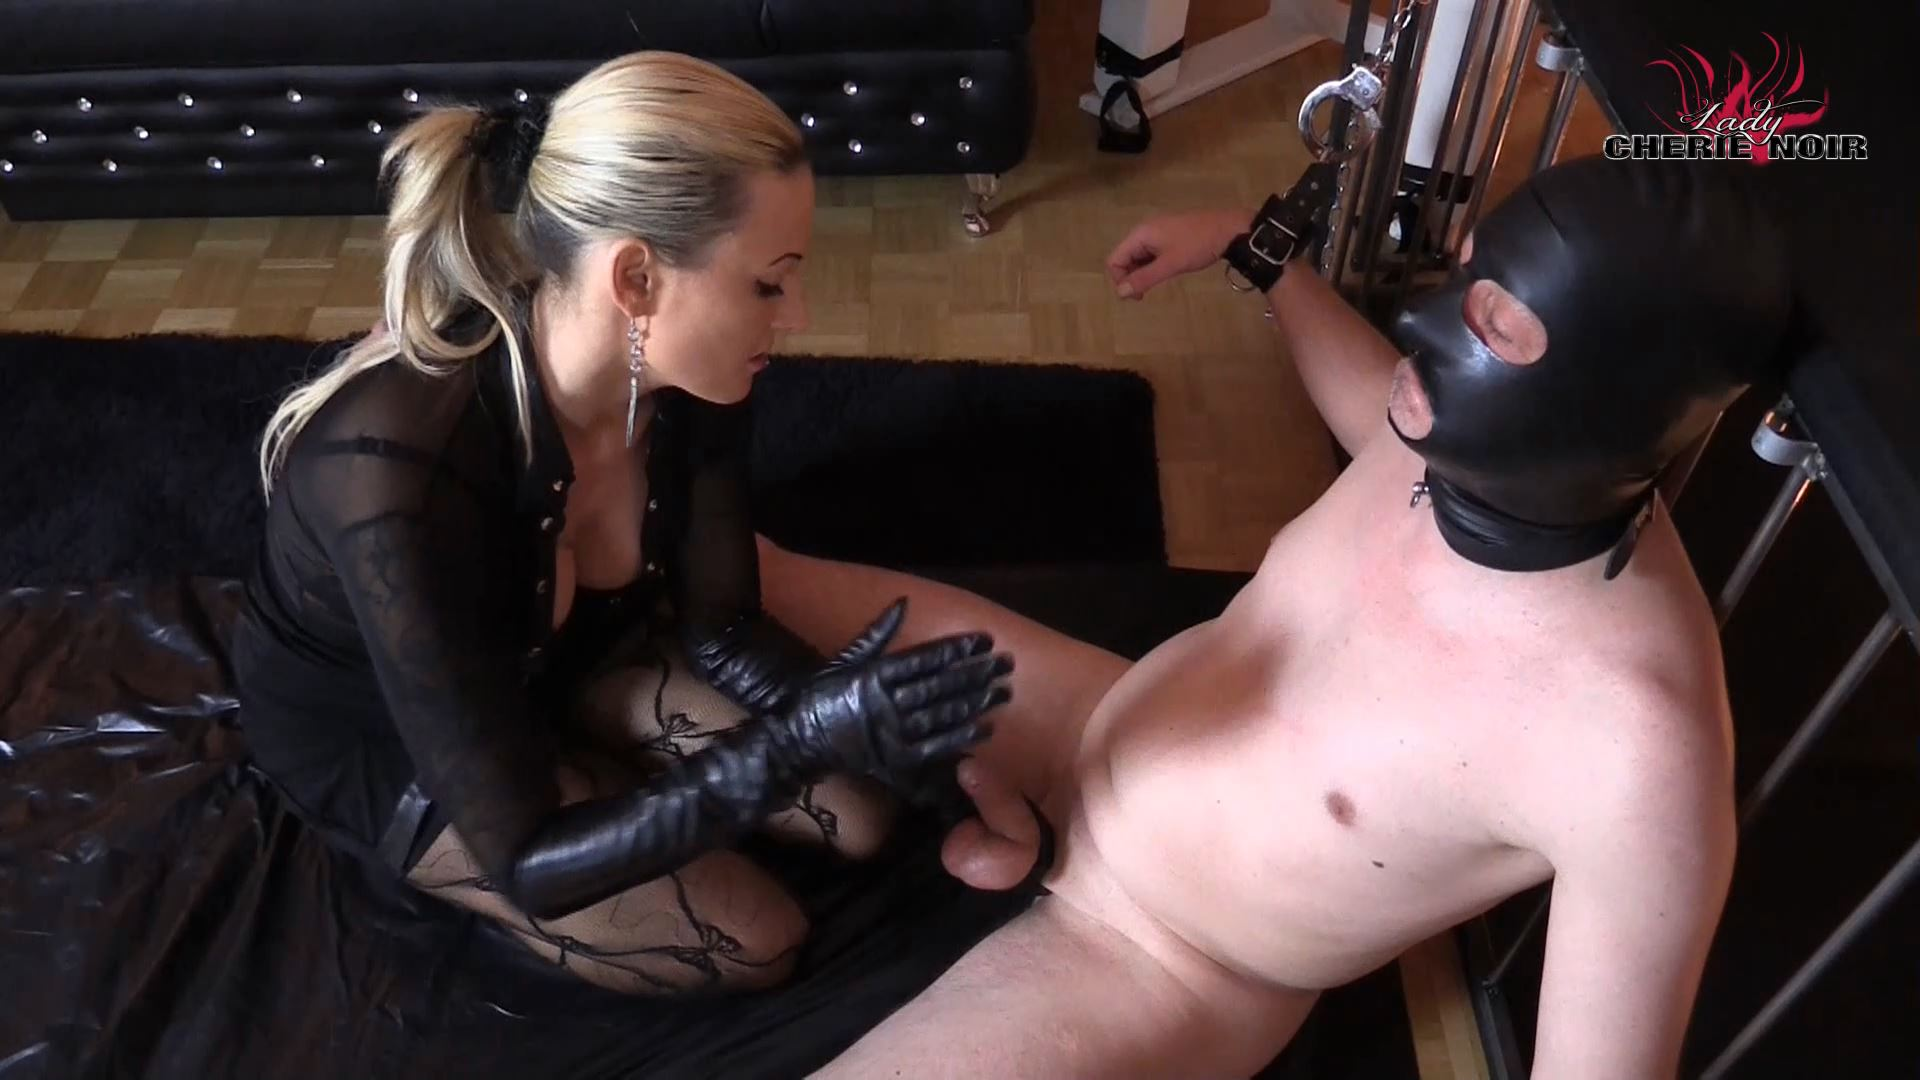 CHERIE NOIR In Scene: Leather CBT Cock torture and long leather gloves - CHERIENOIR - FULL HD/1080p/MP4